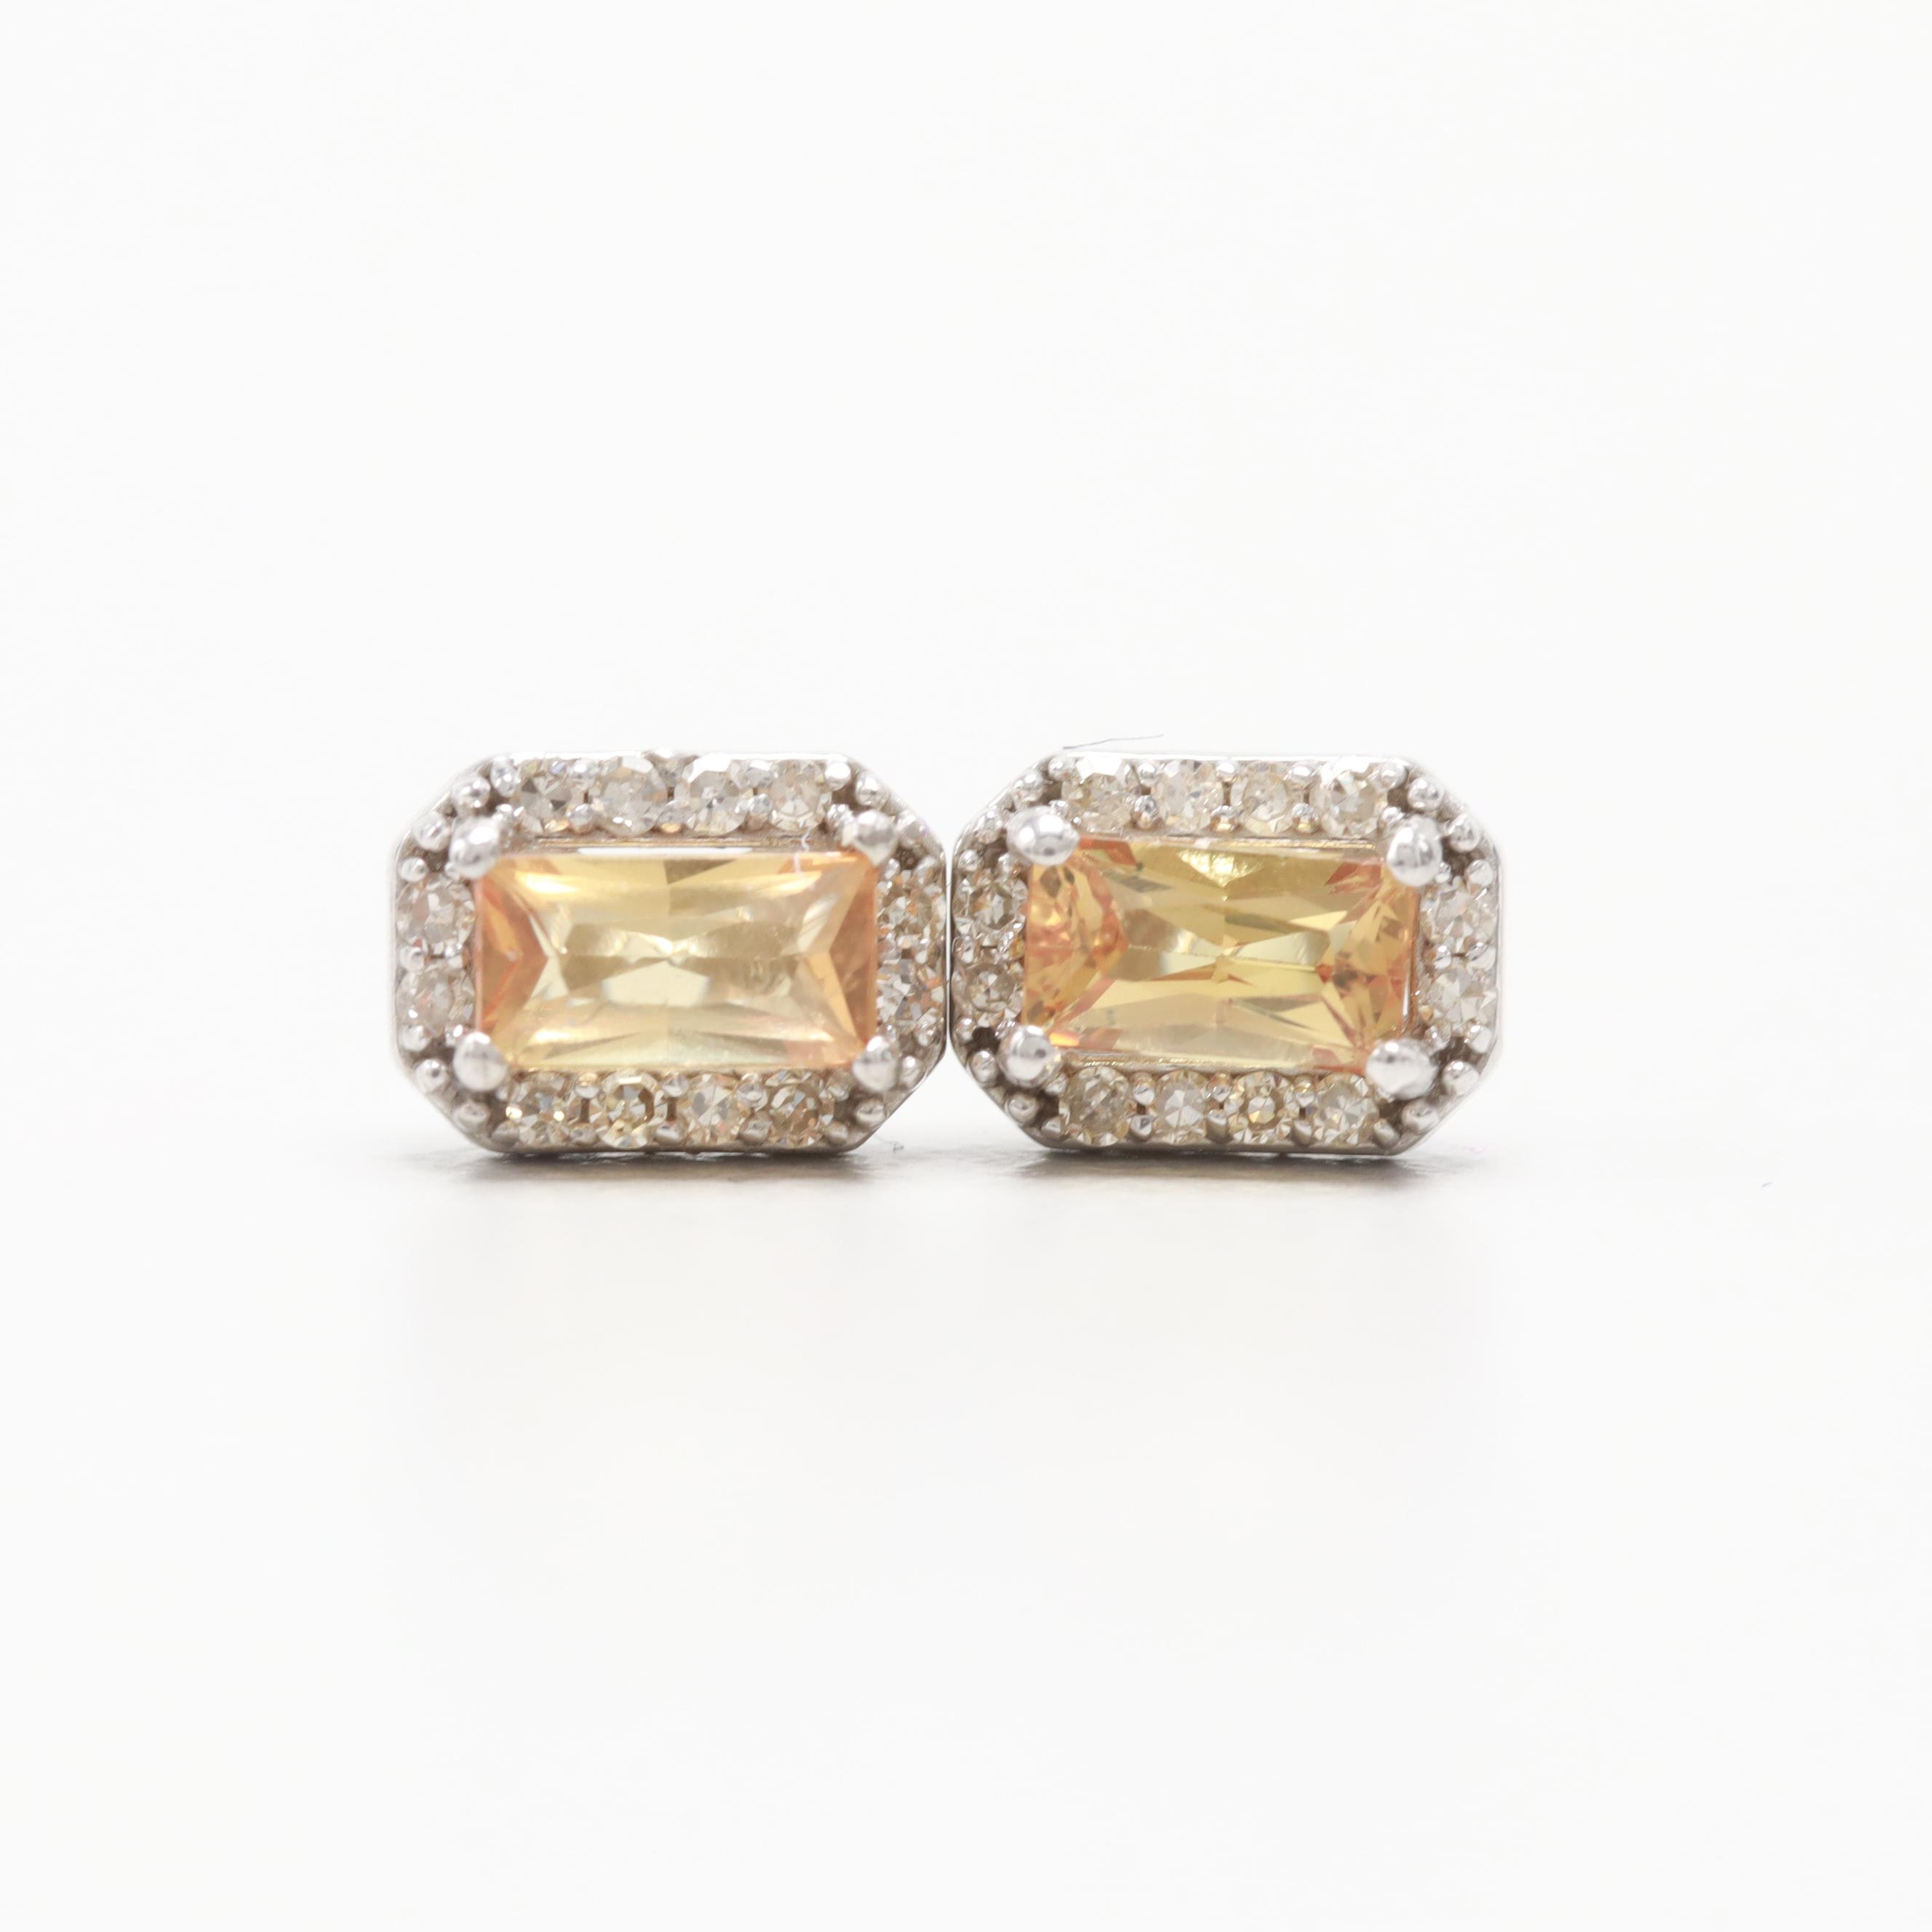 14K Yellow Gold Topaz and Diamond Stud Earrings